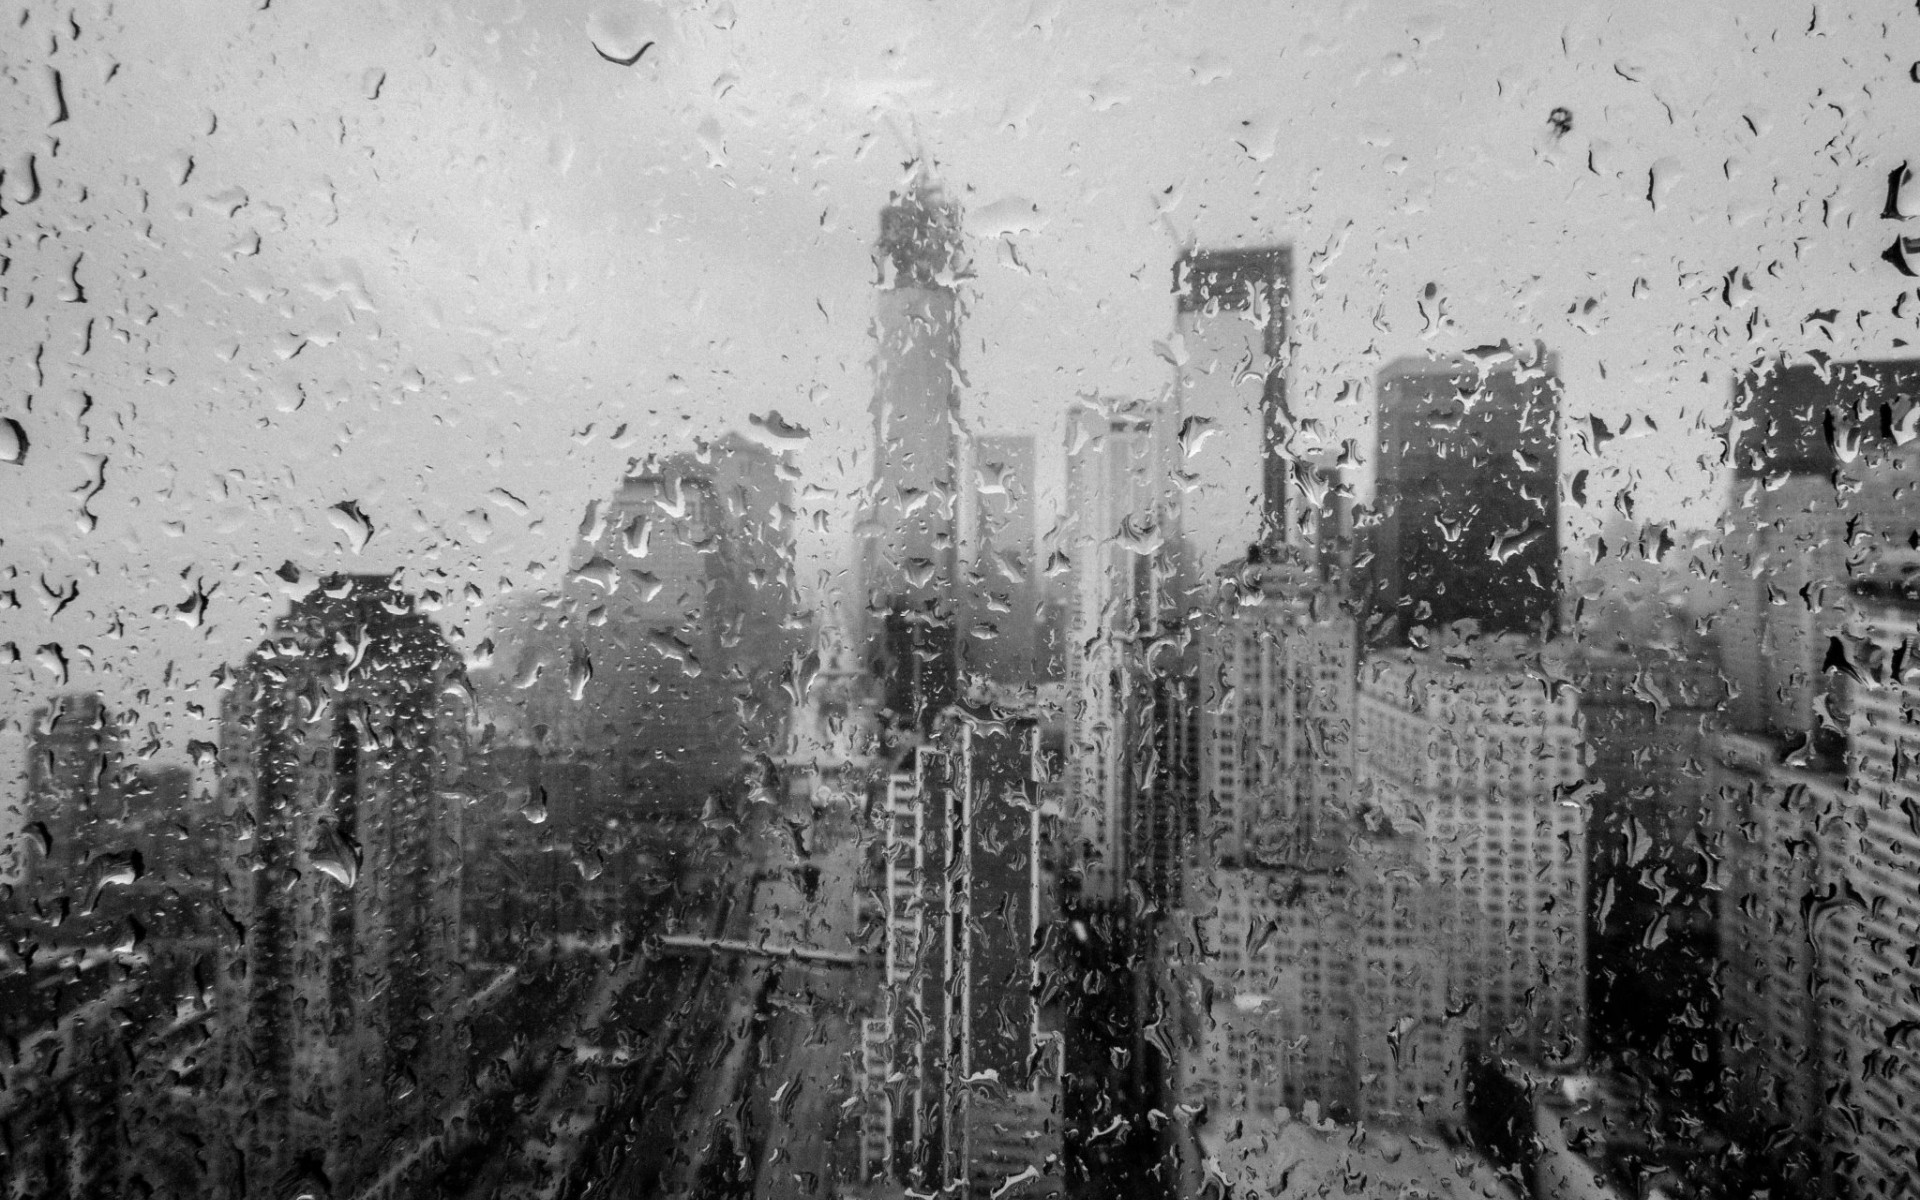 Huricane_Sandy_new_york_world_architercture_buildings_skyscrapers_rain_storm_black_white_disaster_weather_drops_water_1920x1200.jpg - 558.58 kb